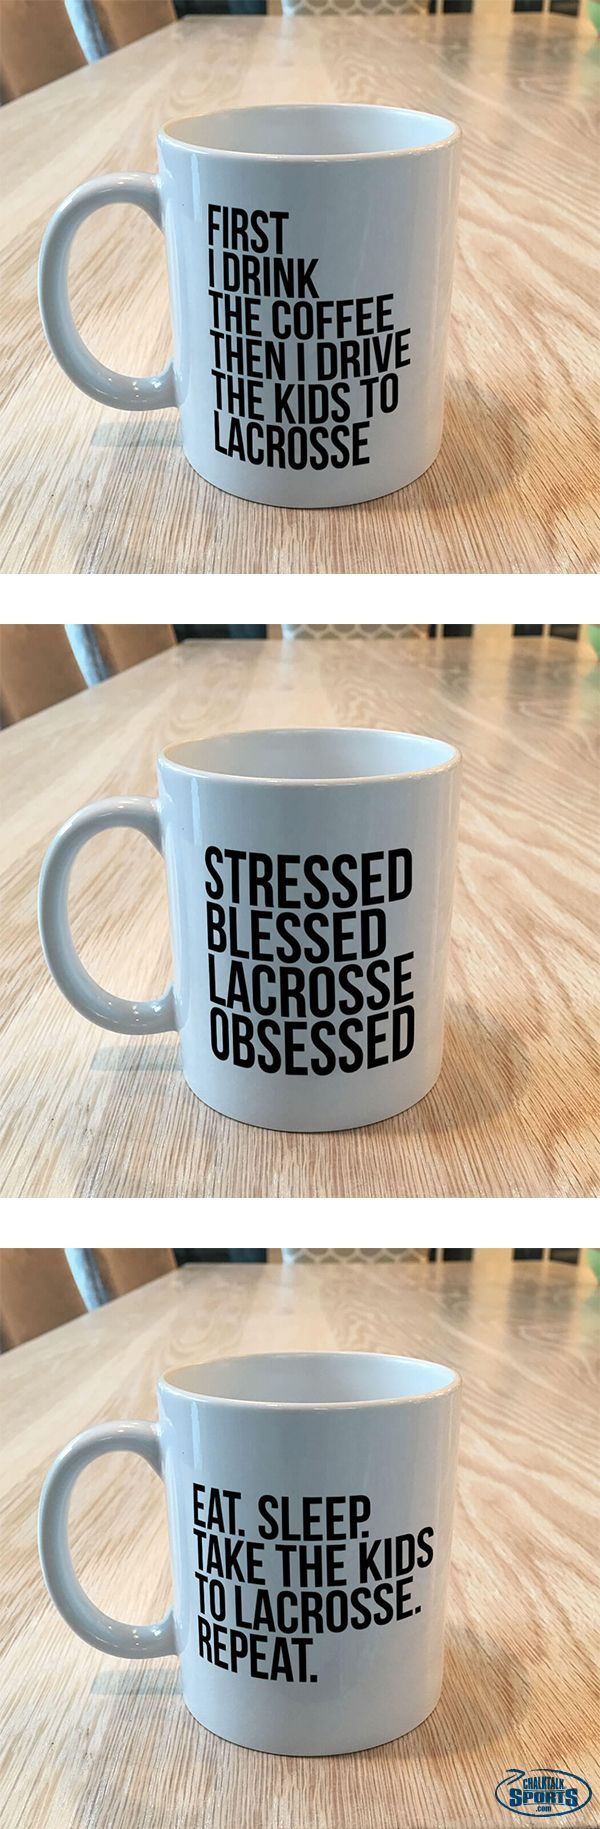 Our NEW ceramic mugs make the perfect gift for any lacrosse parent or fan! Celebrate the #lacrosselife while you sip your coffee, tea or hot cocoa before the big game!